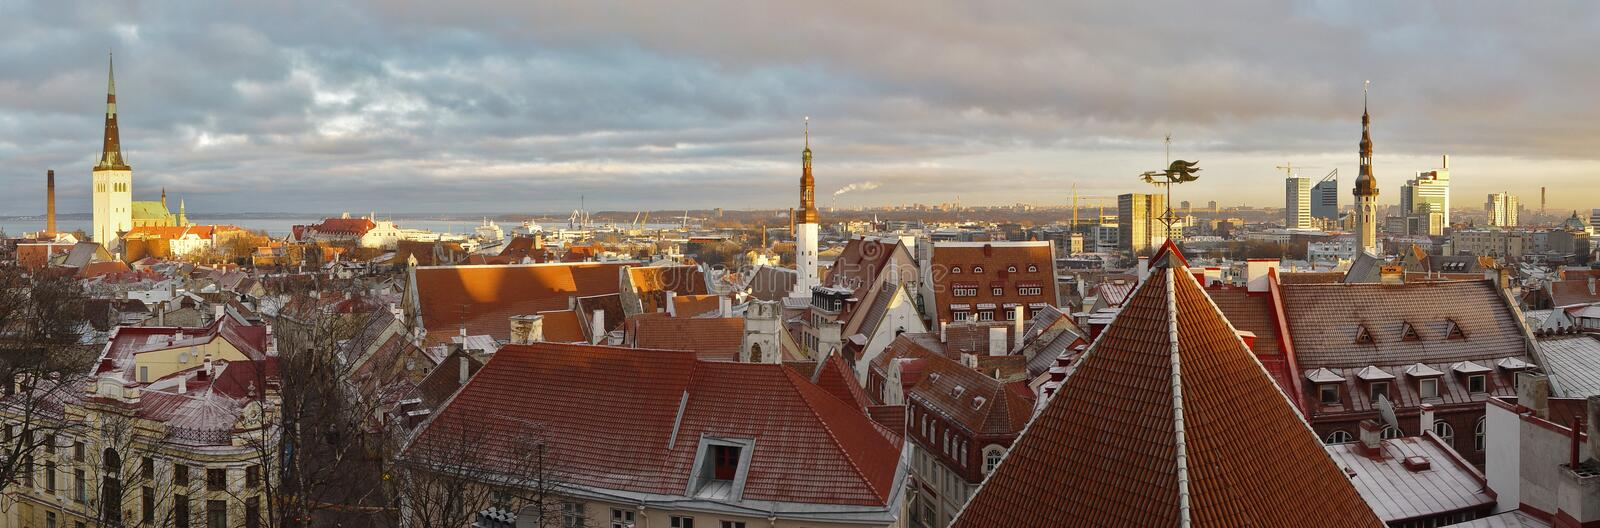 Vue panoramique de Tallinn, Estonie photos libres de droits